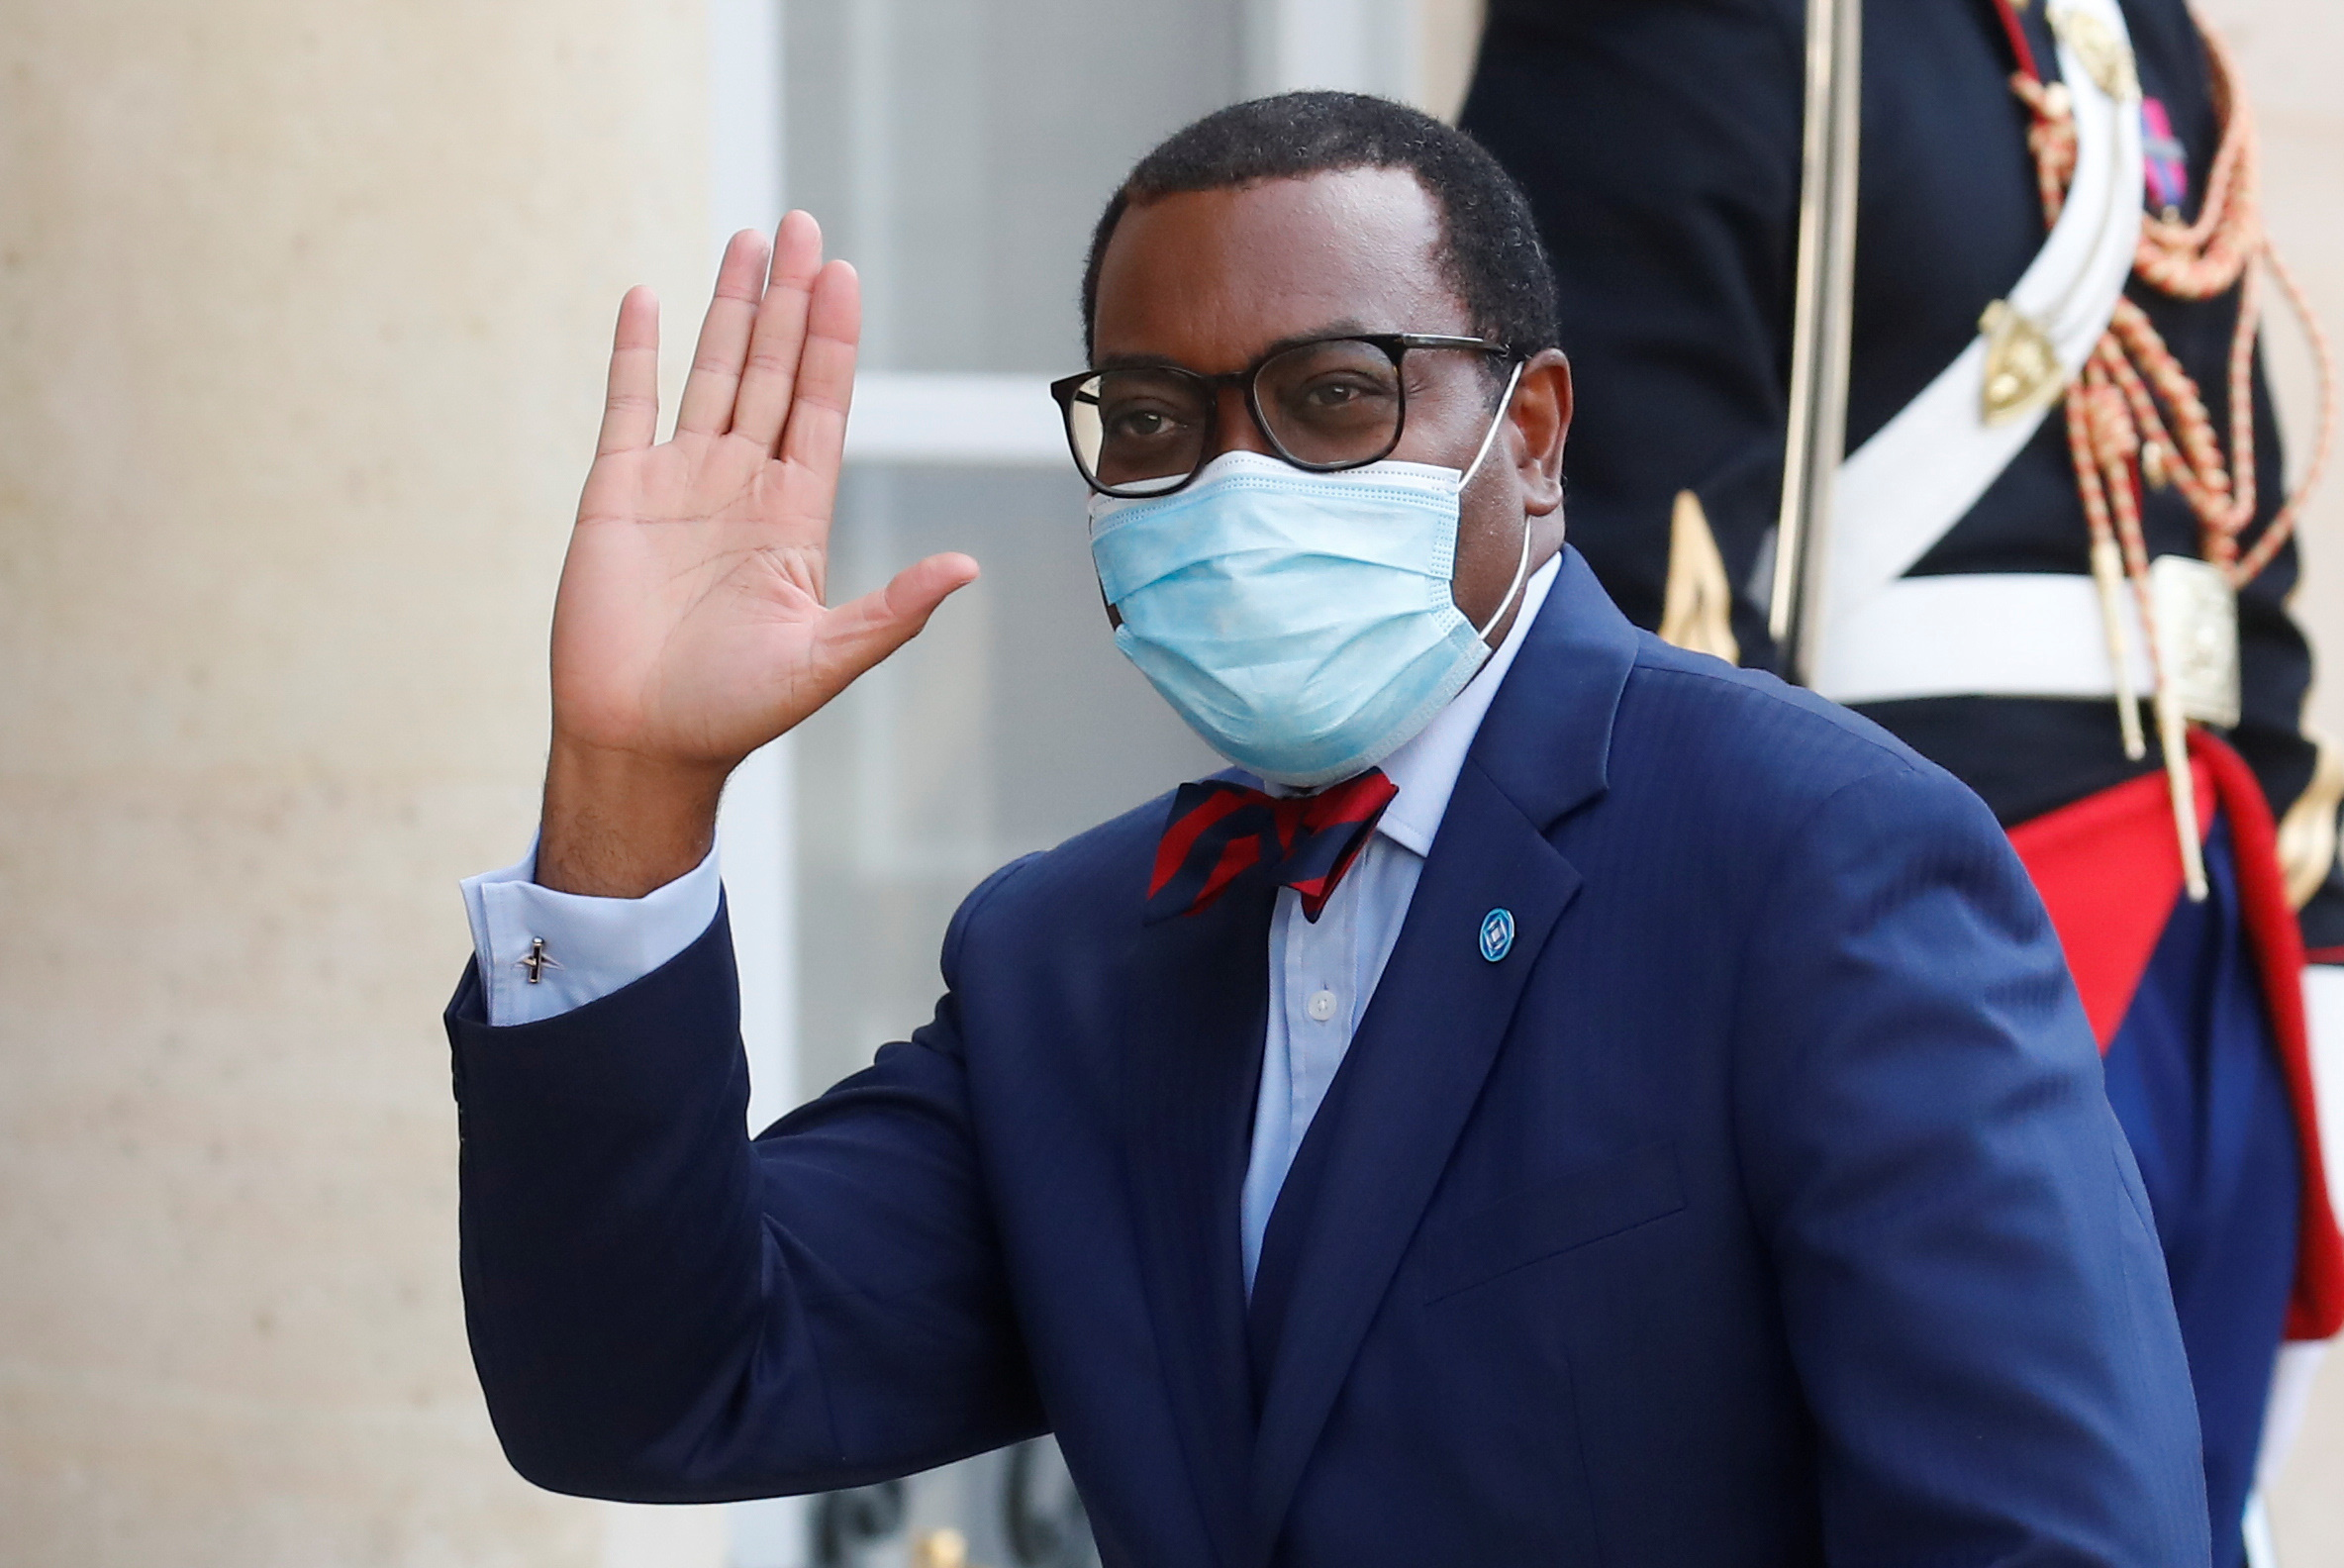 President of the African Development Bank, M. Akinwumi Adesina waves as he arrives for a dinner with French President Emmanuel Macron and leaders of African states and international organisations on the eve of a summit on aid for Africa, at Elysee Palace in Paris, France, May 17, 2021. REUTERS/Gonzalo Fuentes/File Photo